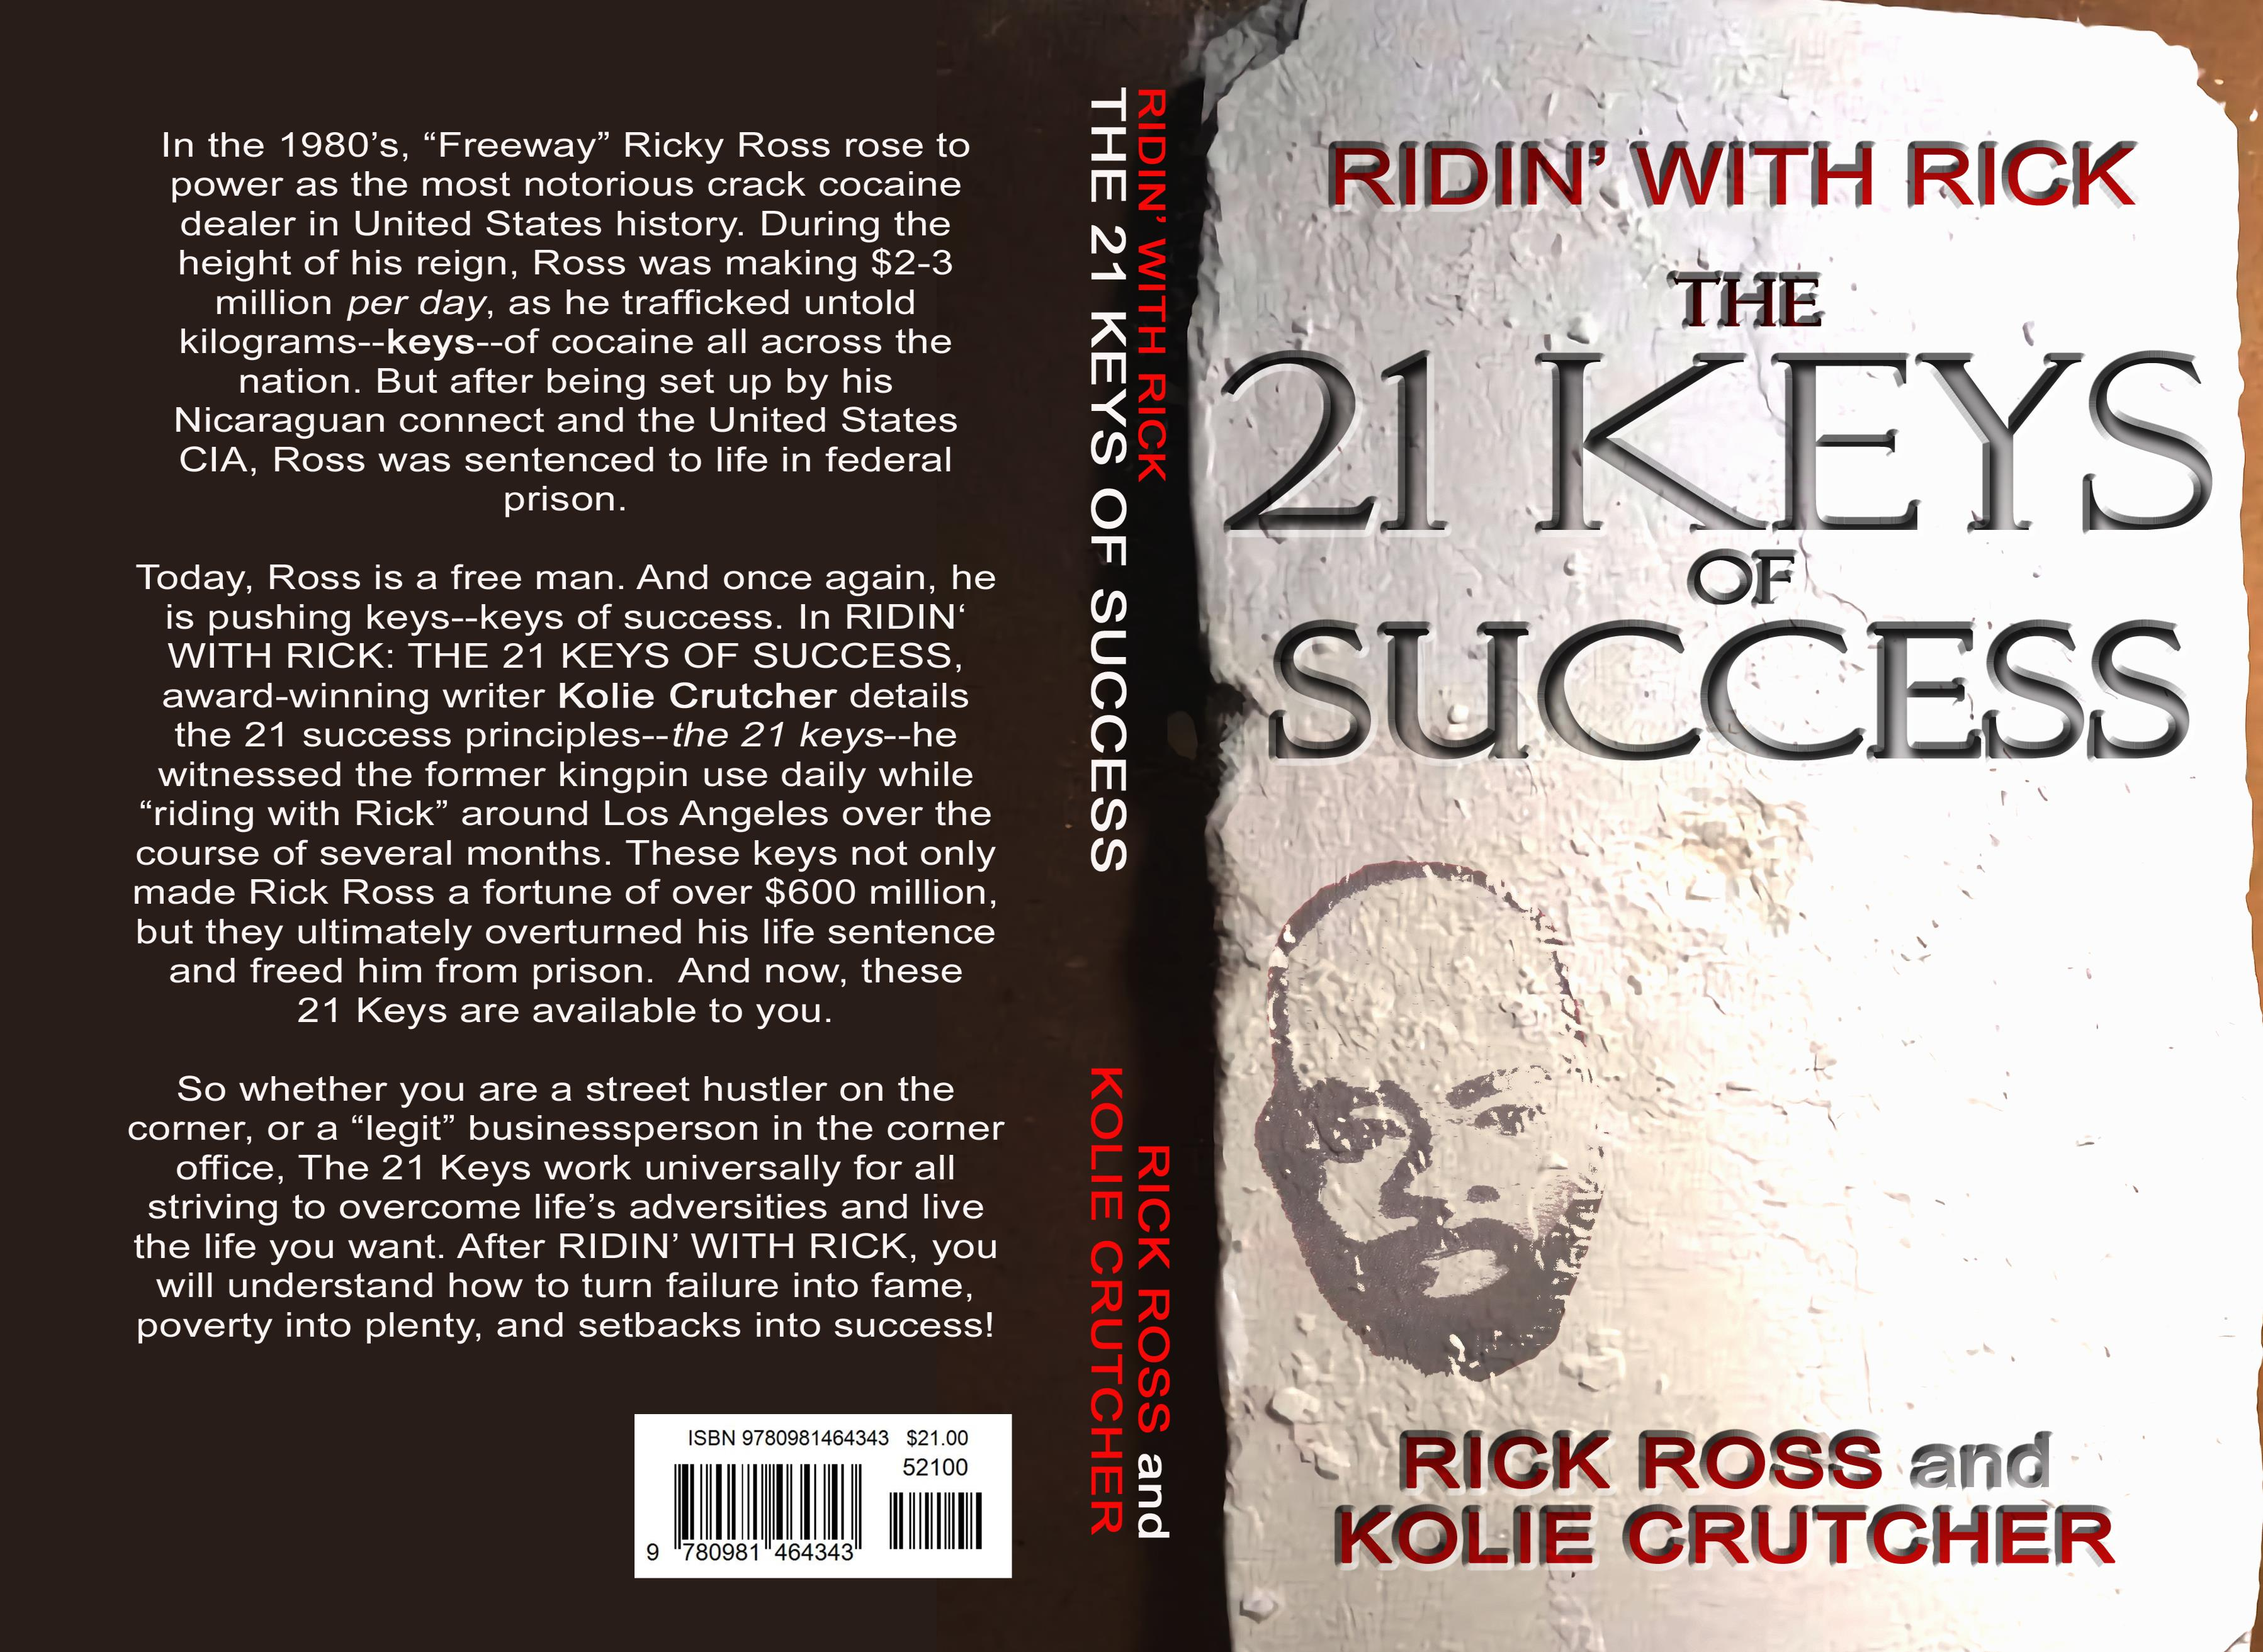 THE 21 KEYS OF SUCCESS cover image